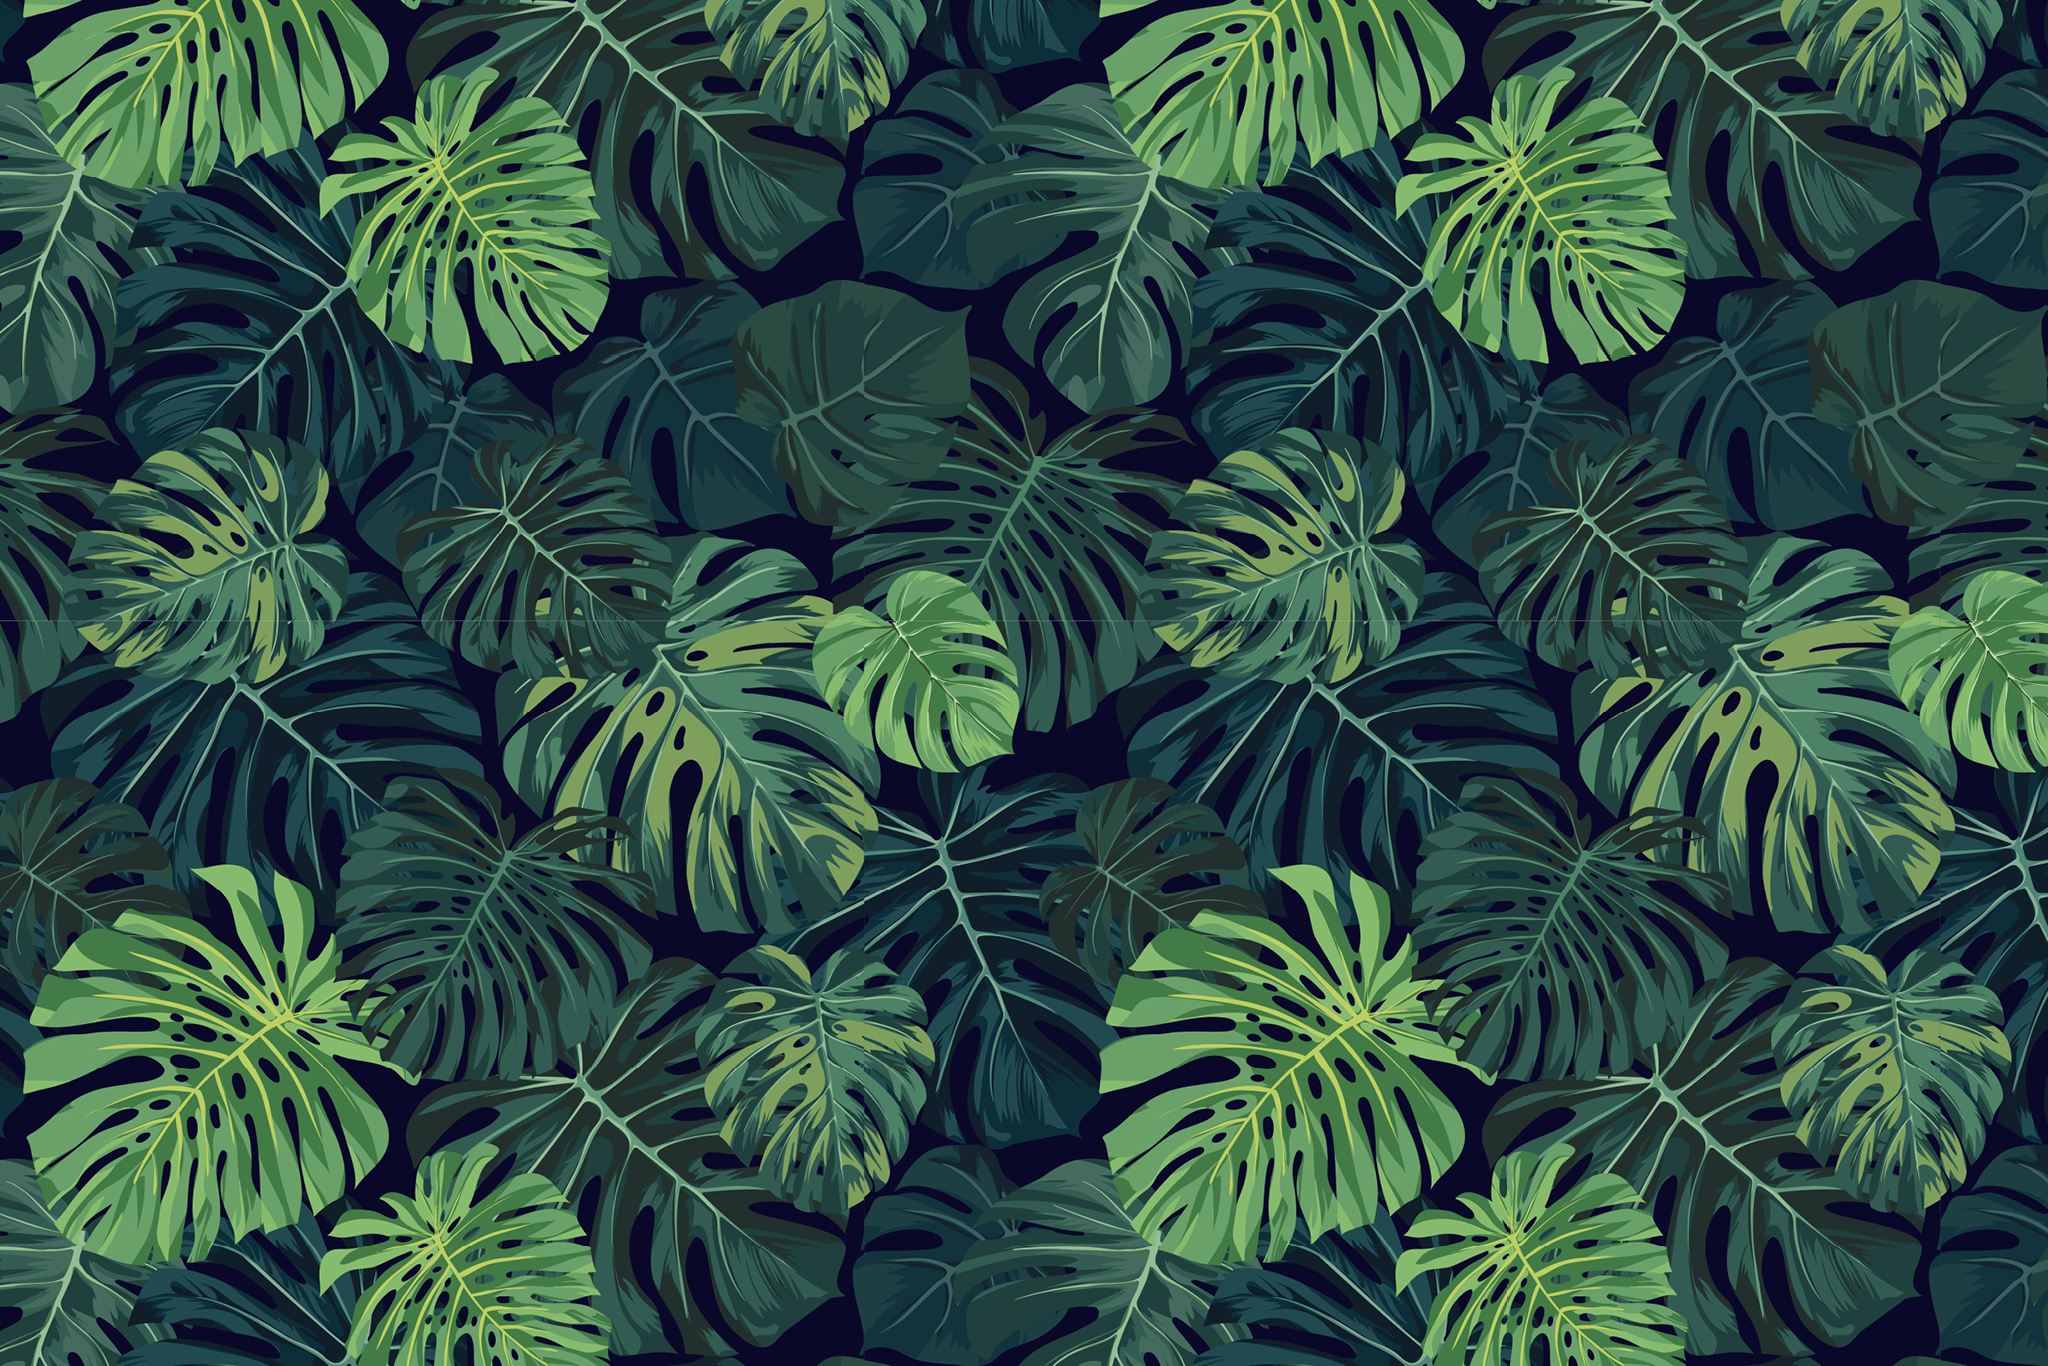 Palm Print Wallpapers for desktop and phone